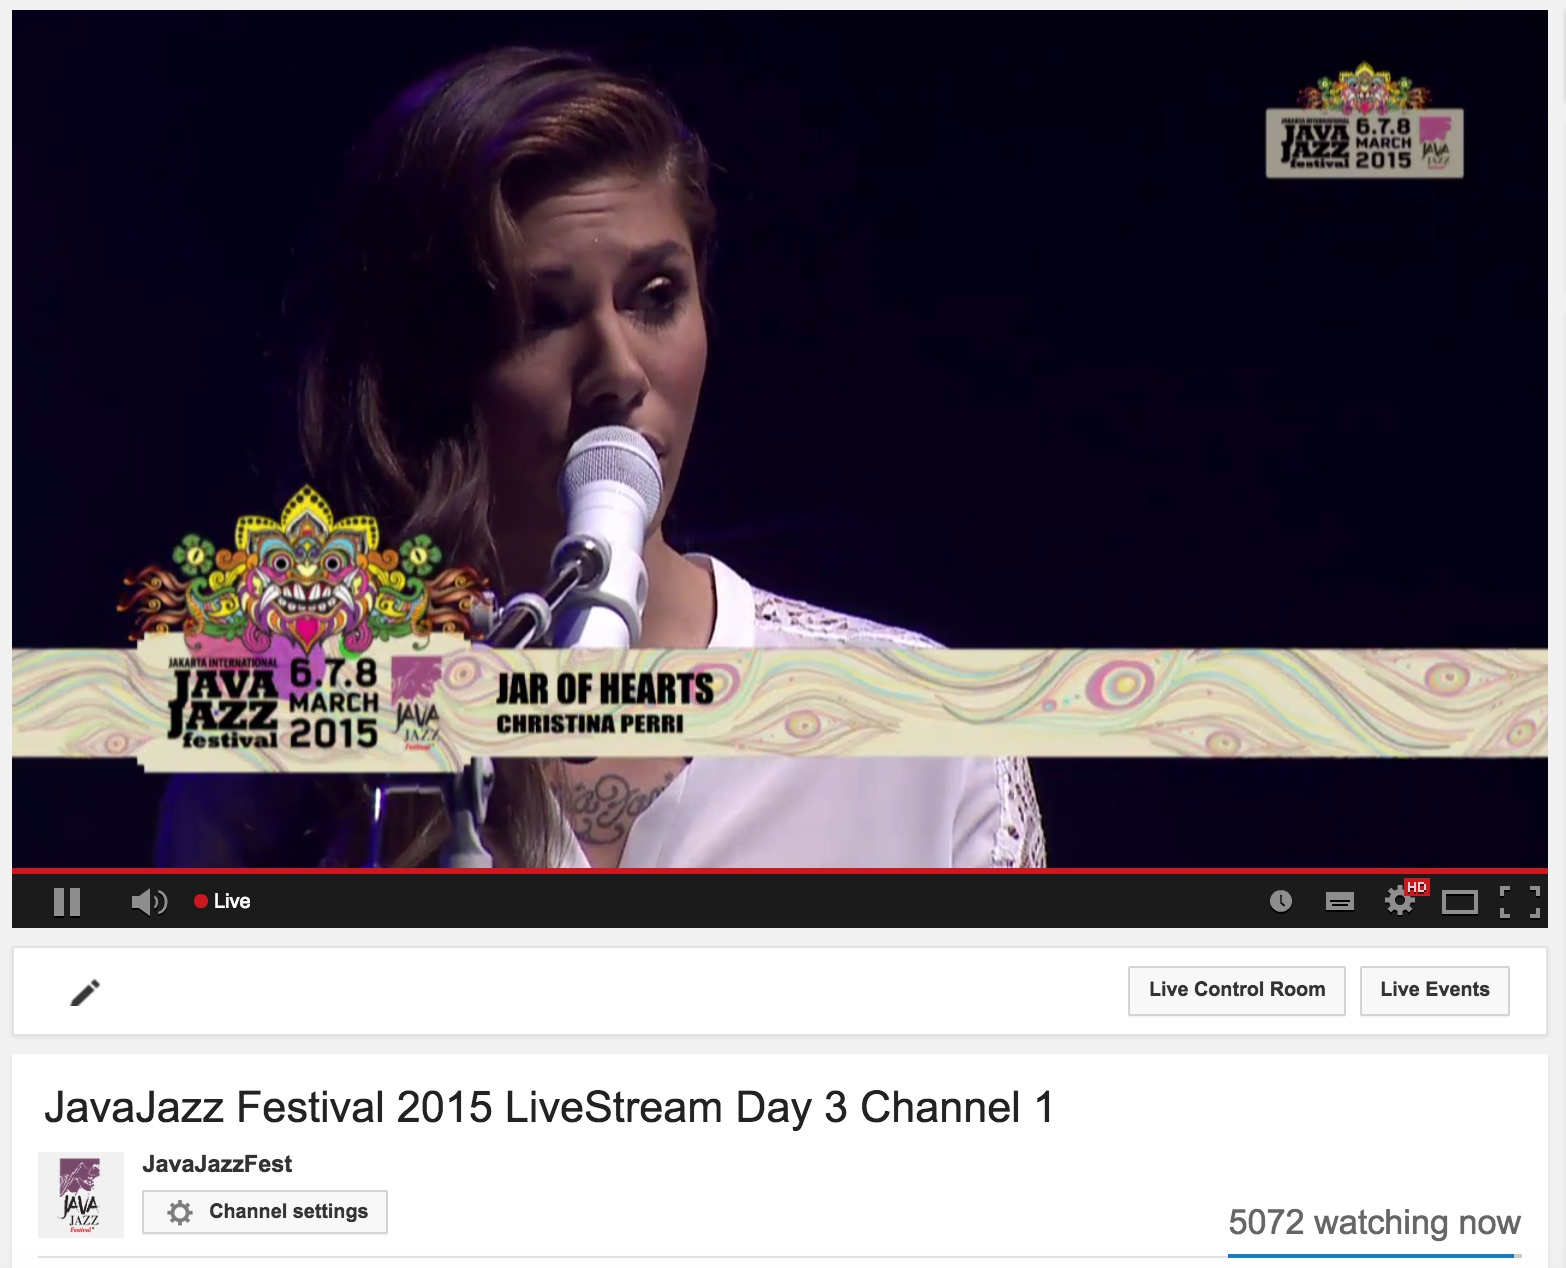 Screenshot from YouTube page for the Java Jazz Festival live stream, courtesy Interindo Multimedia PT.